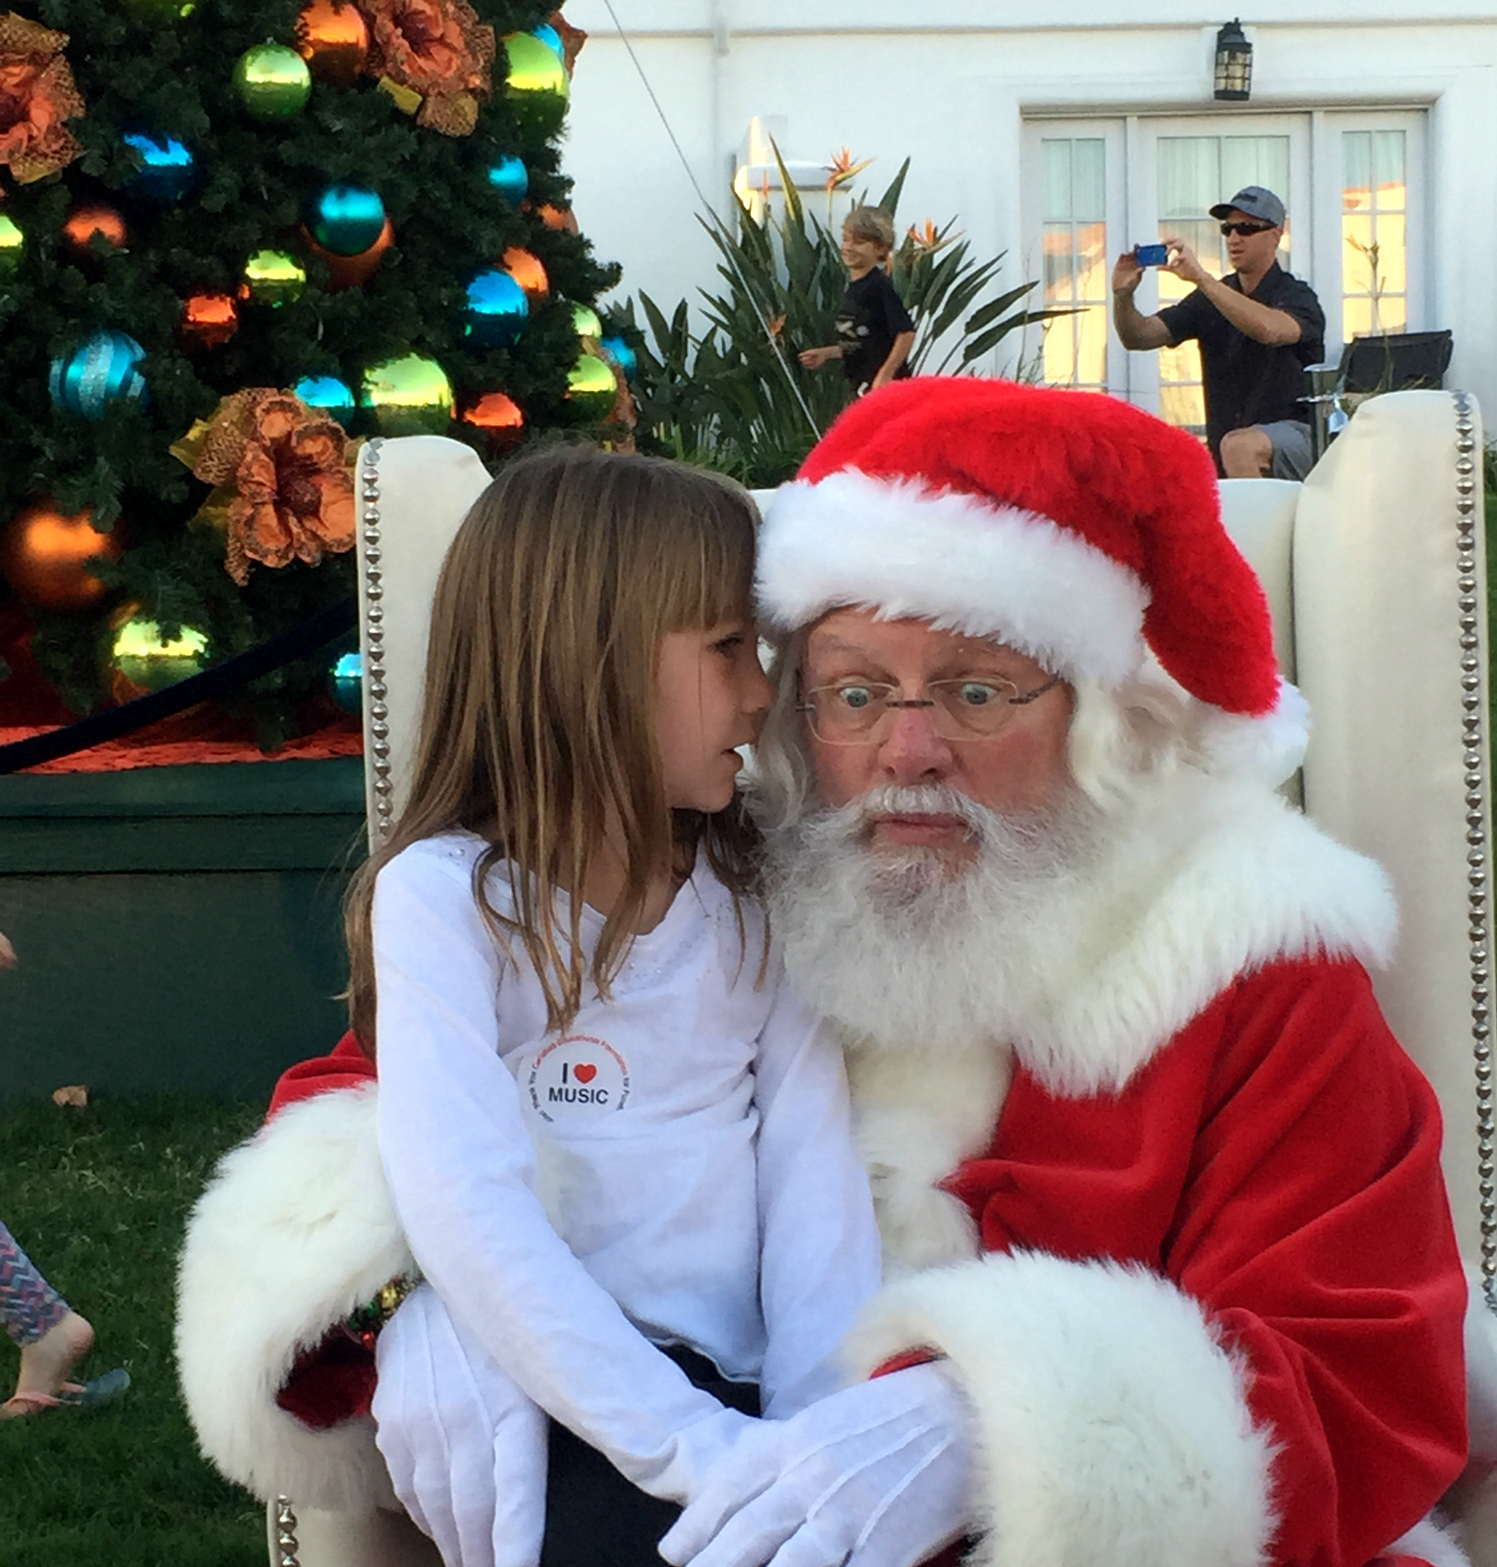 Fun Things To Do With Kids This Weekend (Dec 1-4, 2016)